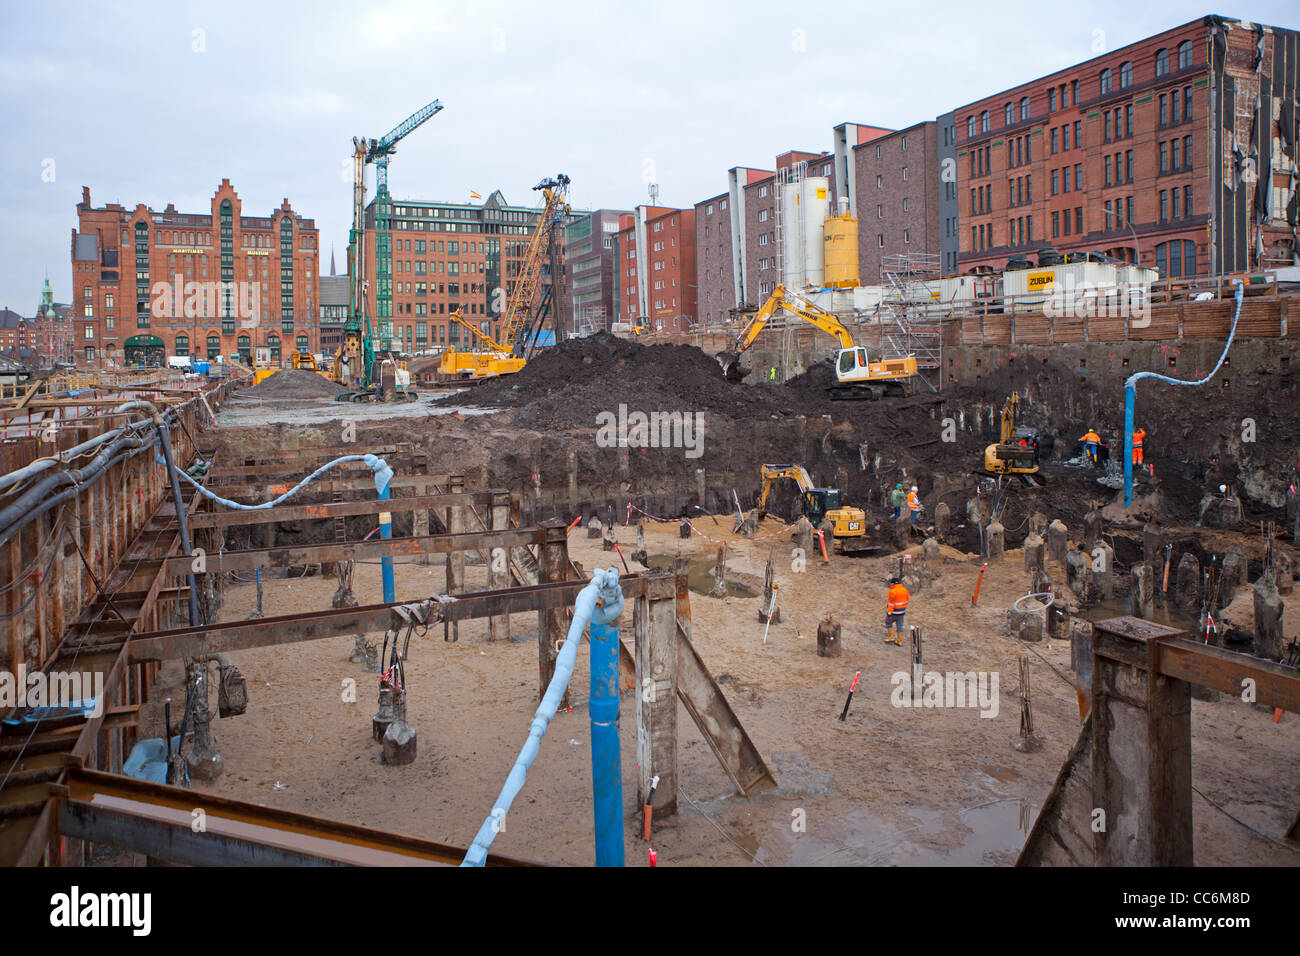 building site at Hafen City, Hamburg, Germany - Stock Image